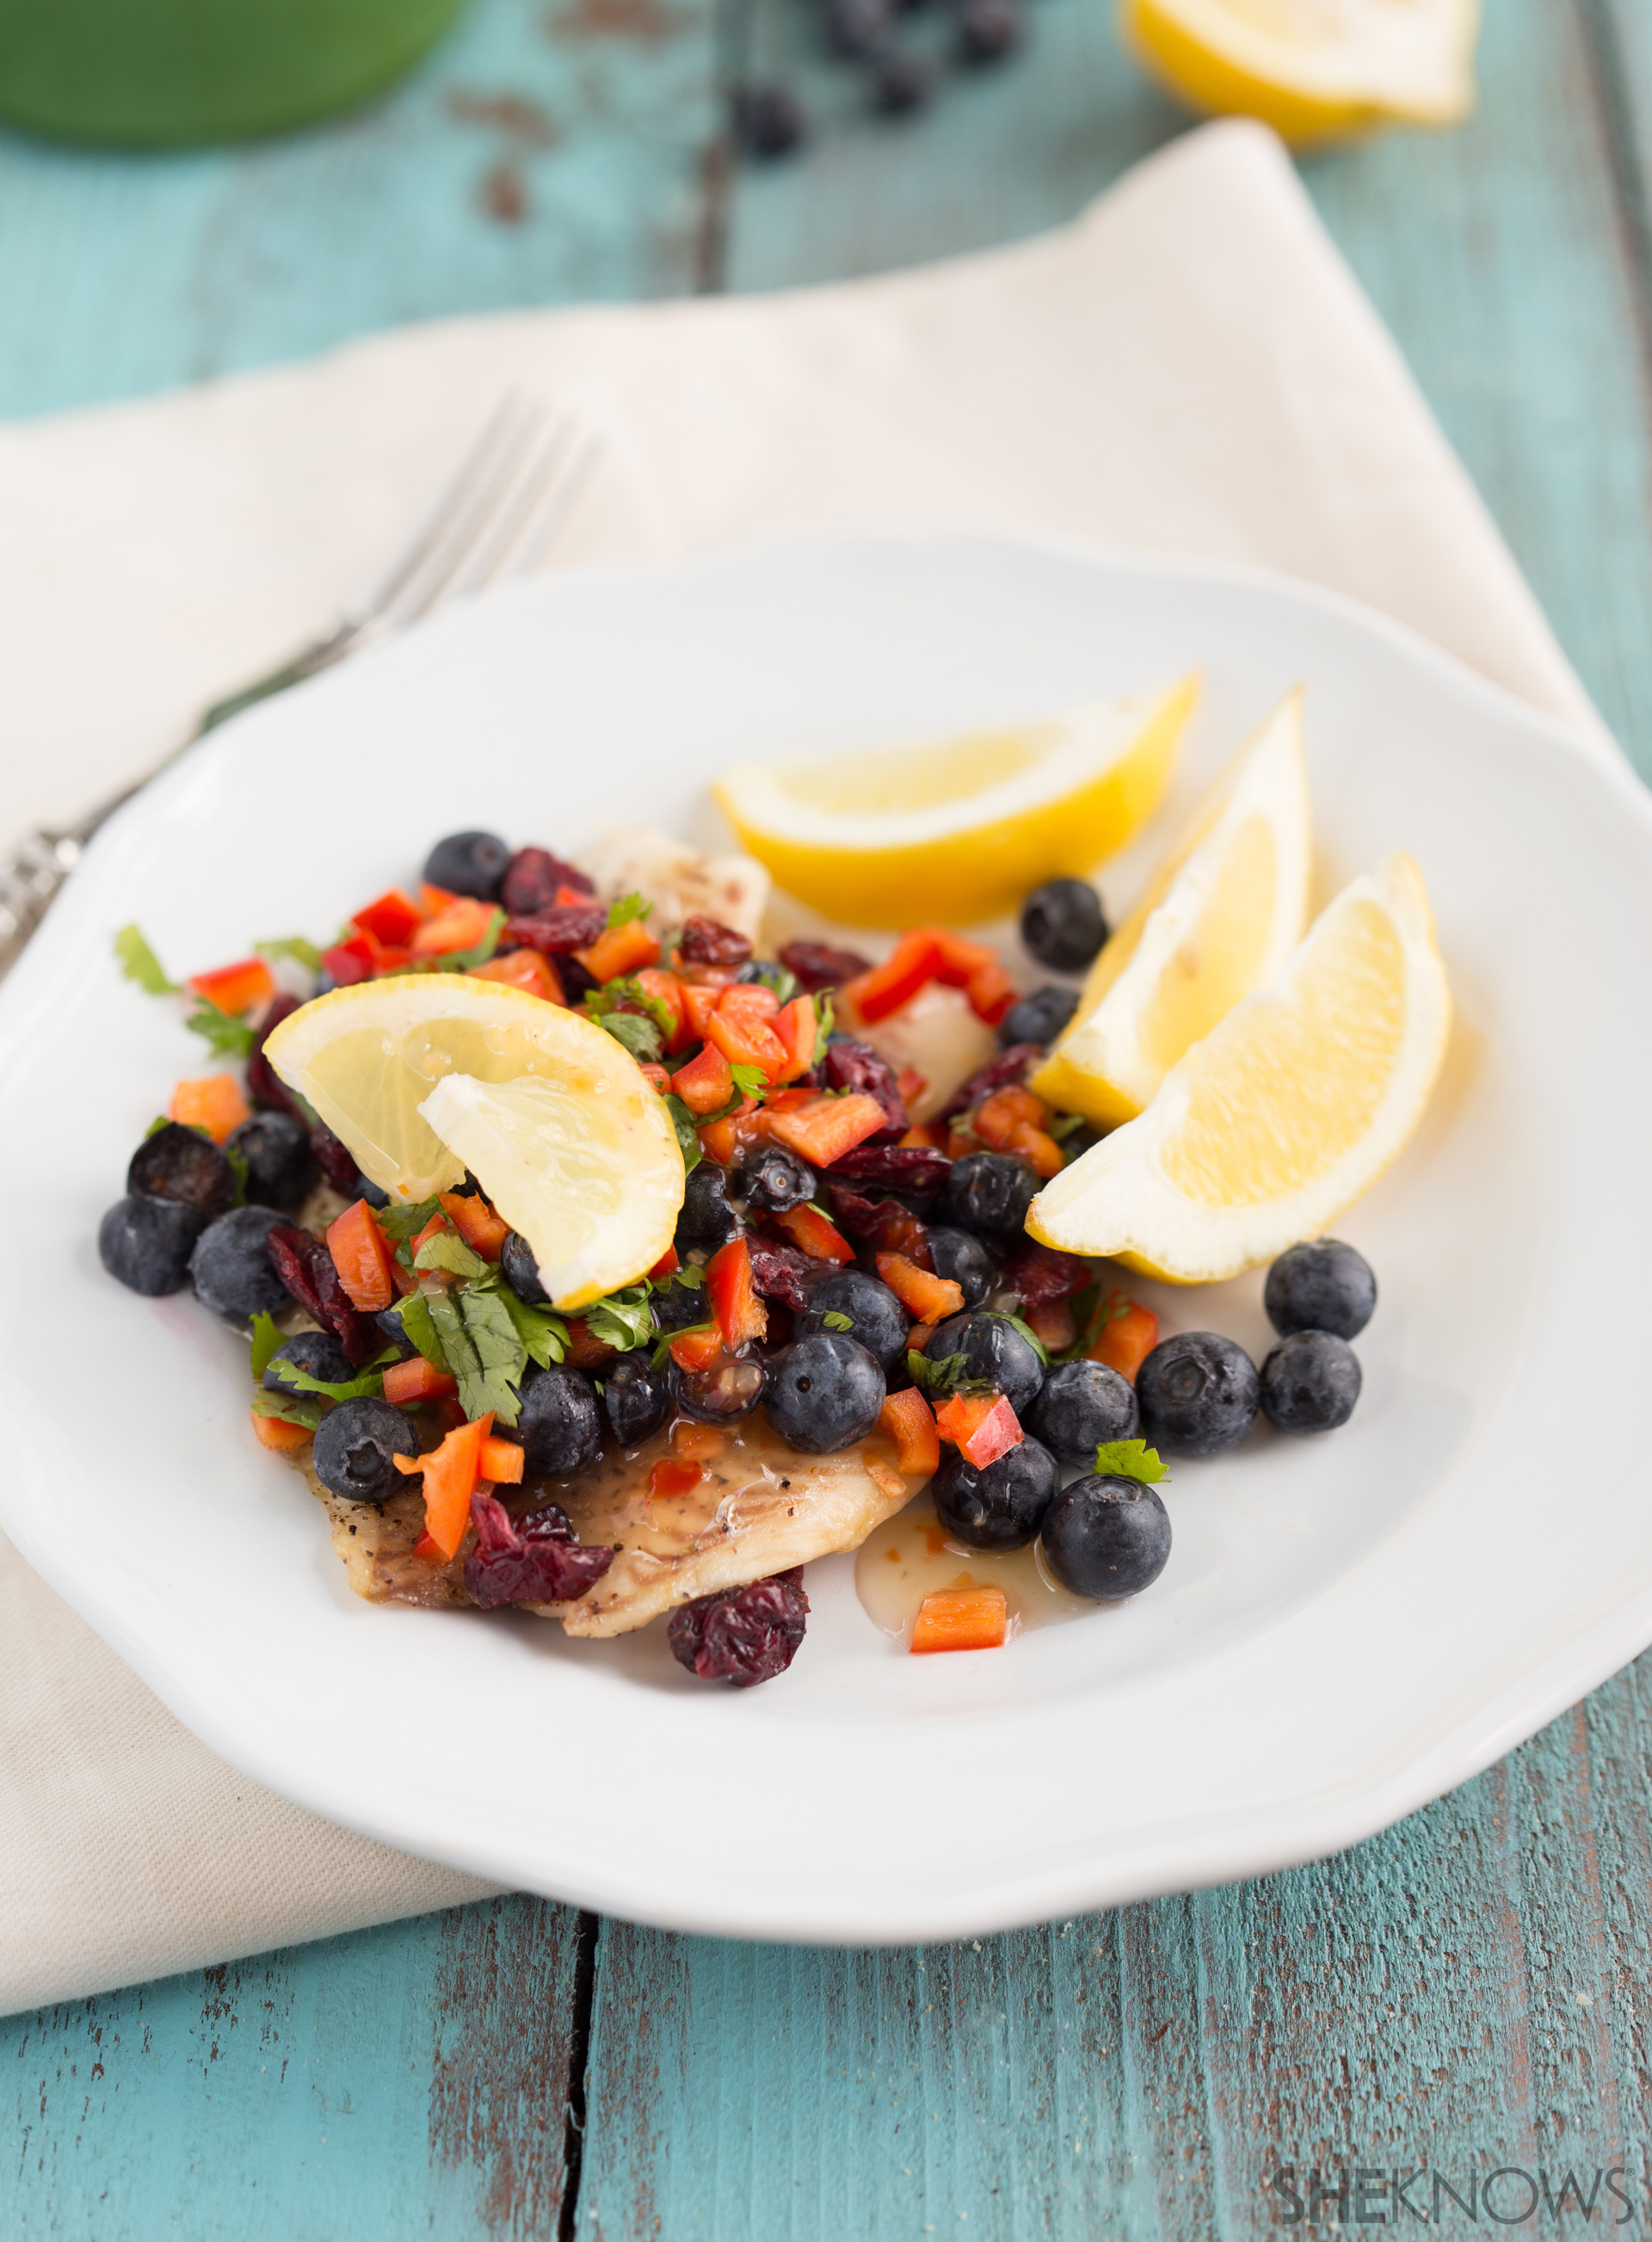 Grilled tilapia with a blueberry salsa